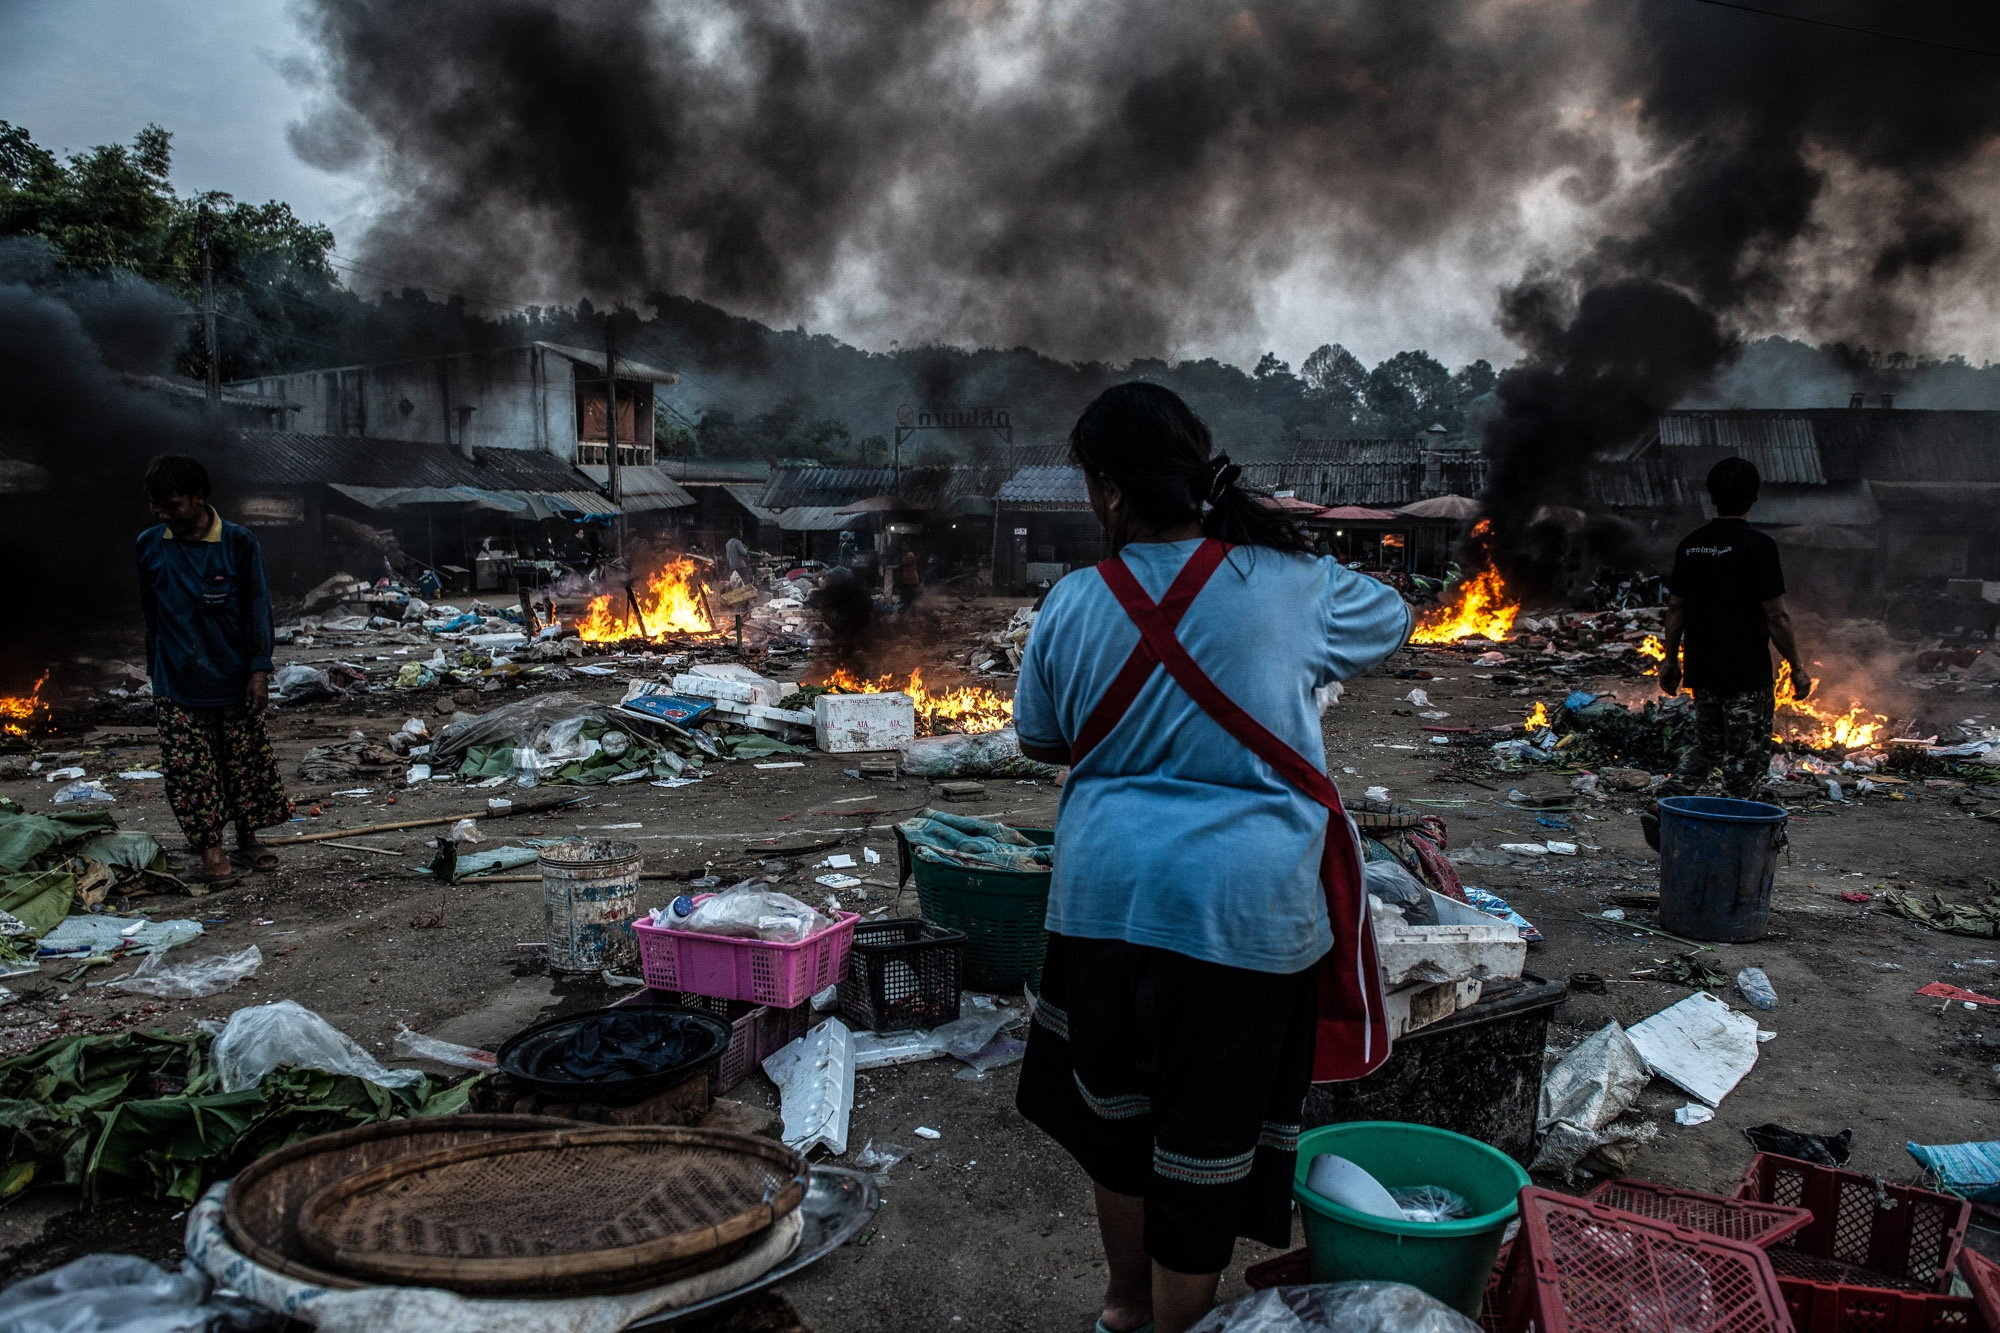 In the period of the smoggy season in Northern Thailand. Most of the activities that involve with burning are blamed to be the caused of smoke crisis. Local villagers in Tak province are burning plastic waste in fresh the market.